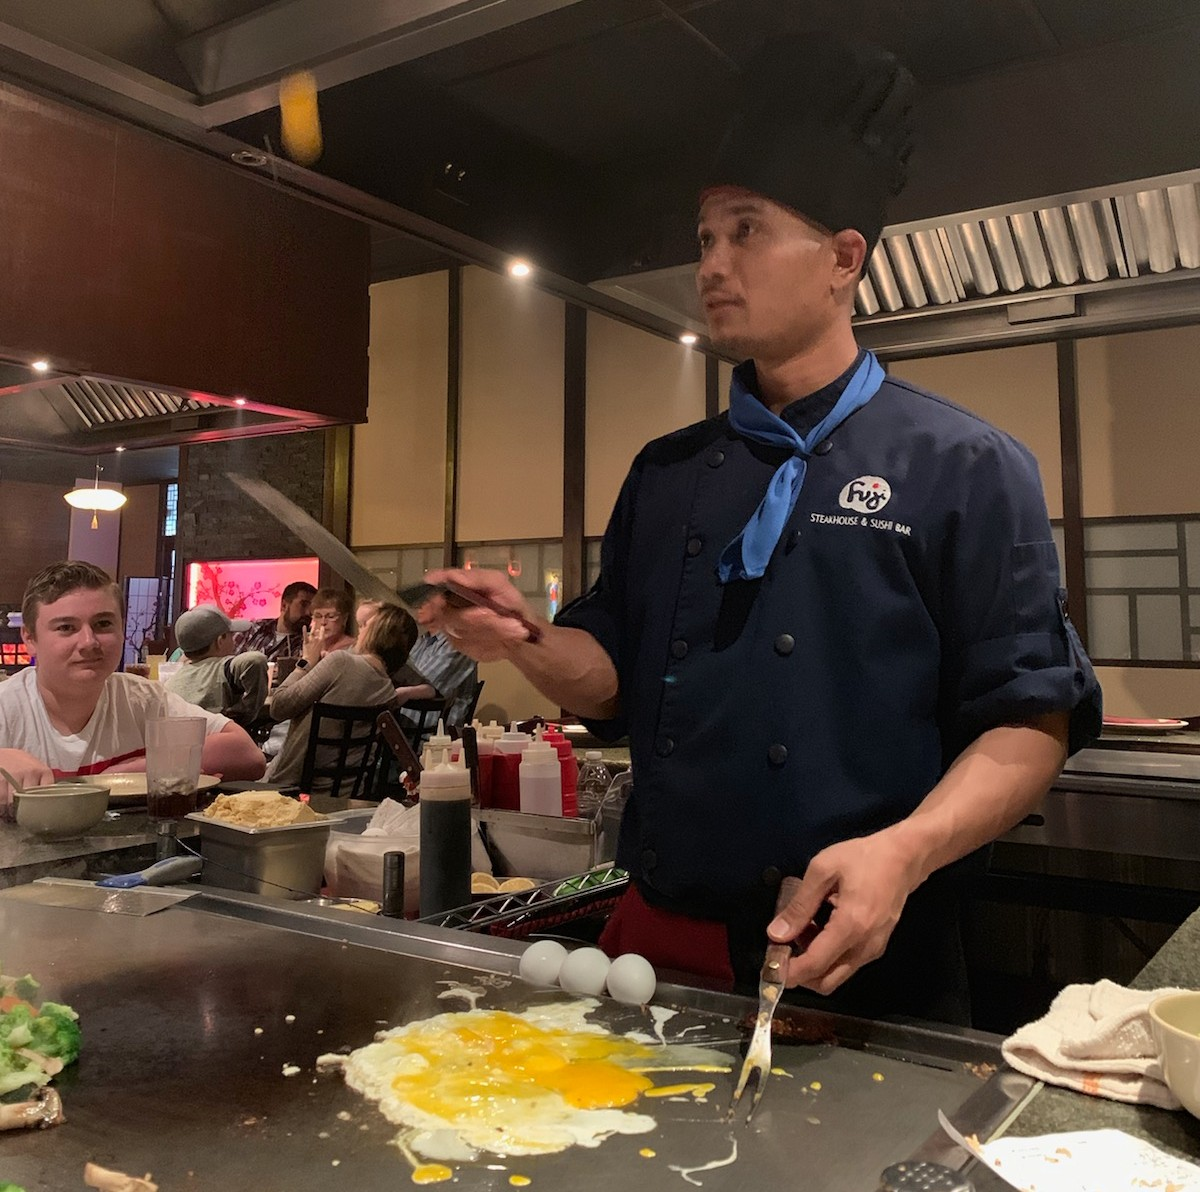 The chefs at the Hibachi grill are trained to entertain you via doing tricks such as throwing food and catching it and twirling their utensils.